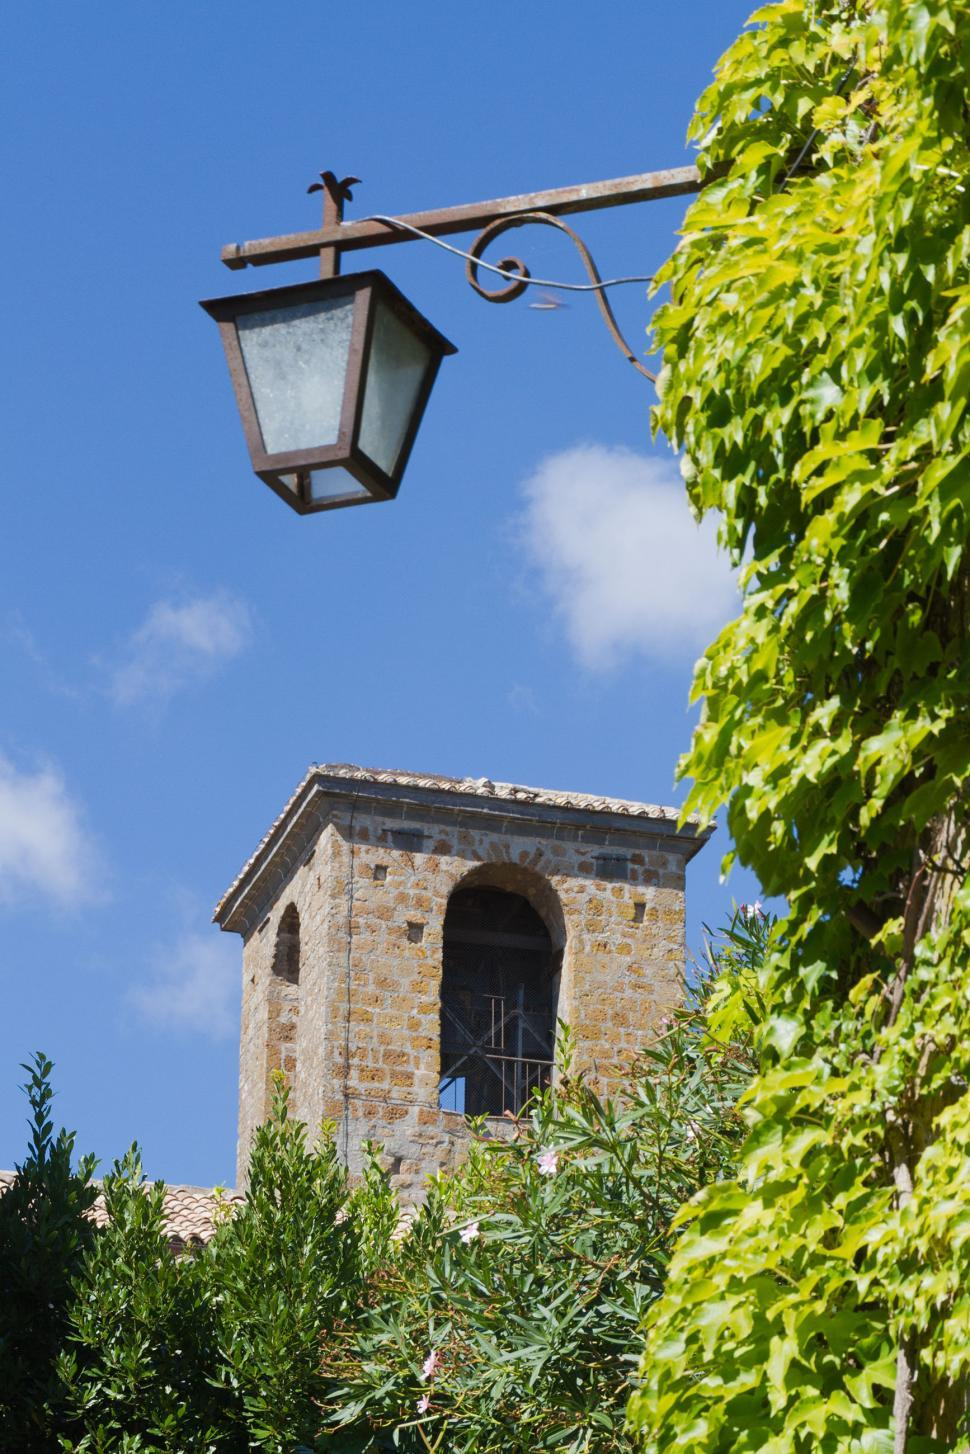 Download Free Stock Photo of Street lamp in old city